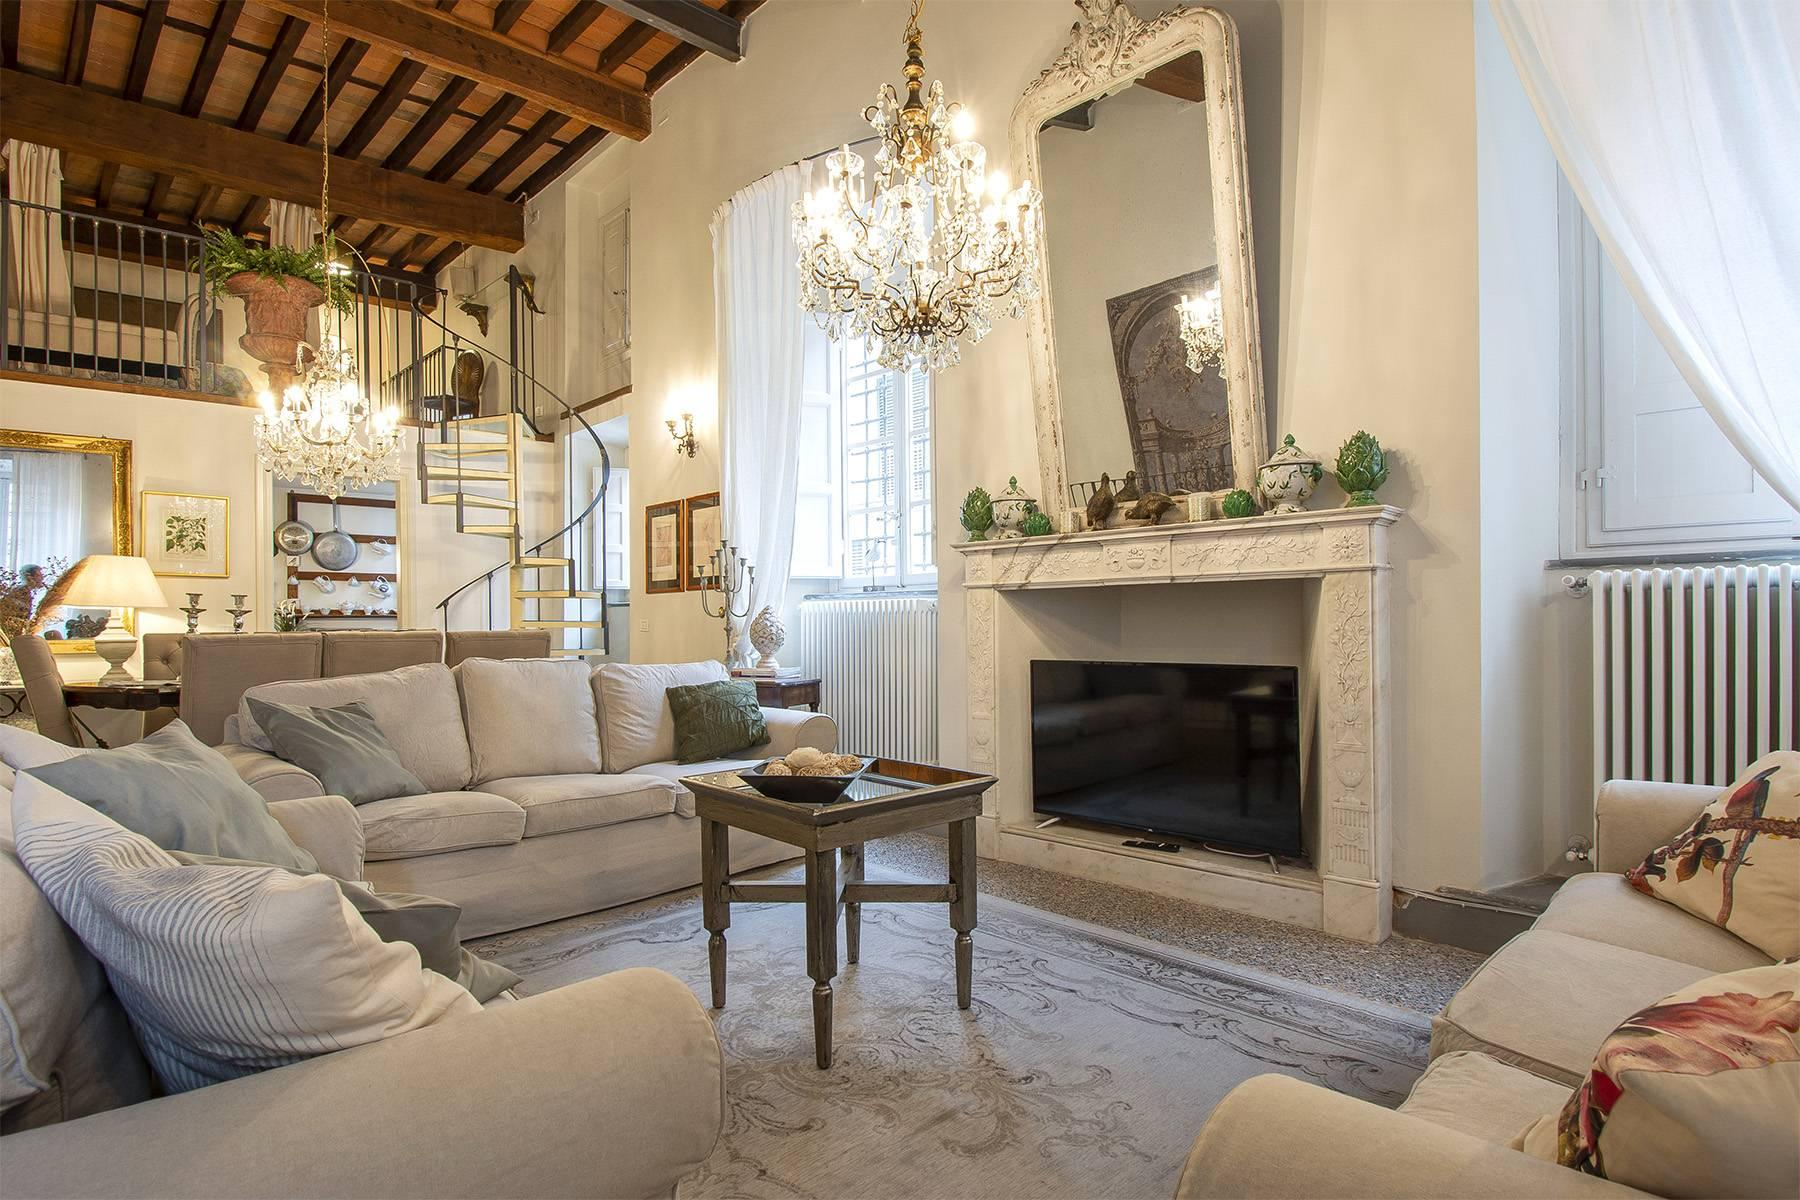 Exclusive apartment in the heart of Lucca - 3